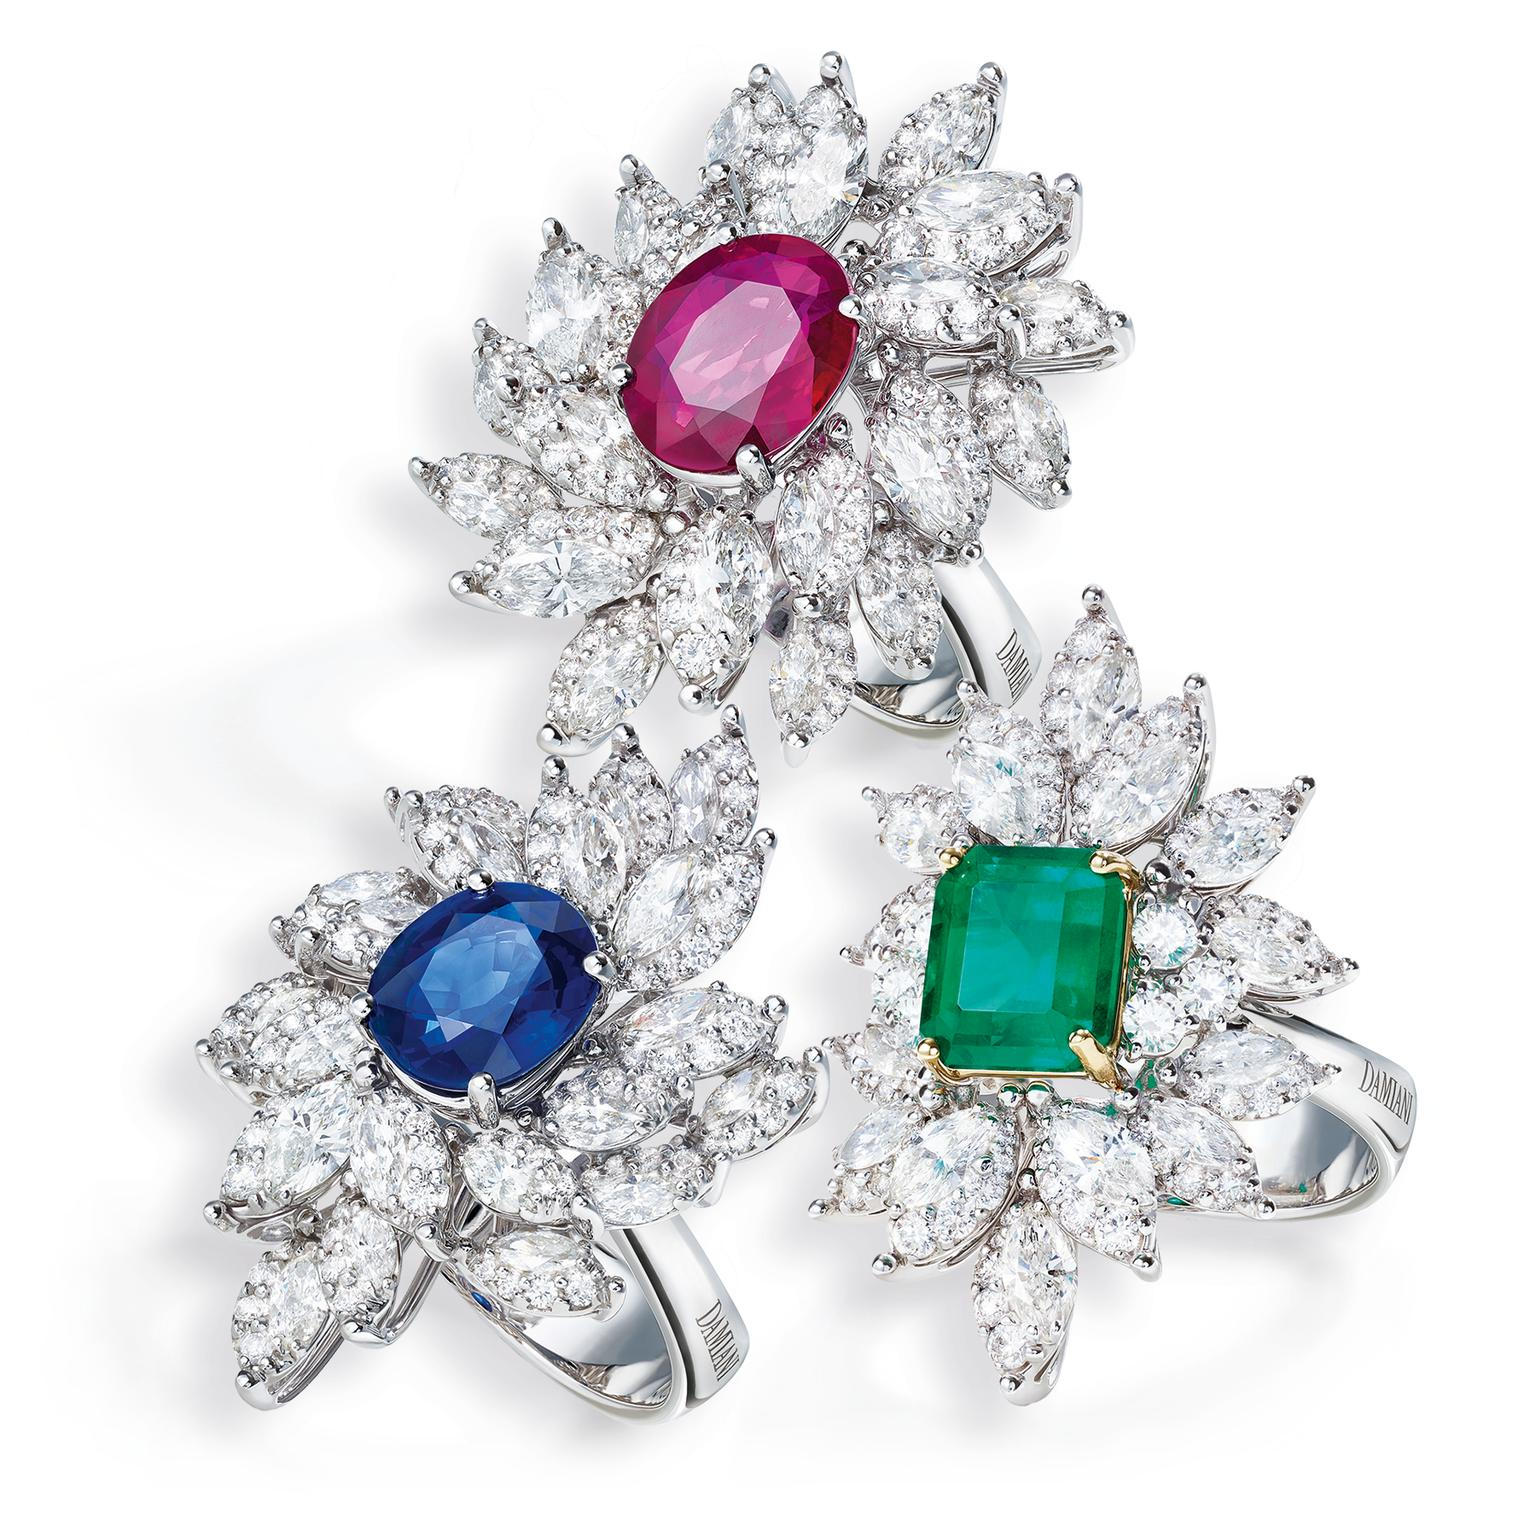 Damiani Emozioni sapphire, emerald and ruby rings